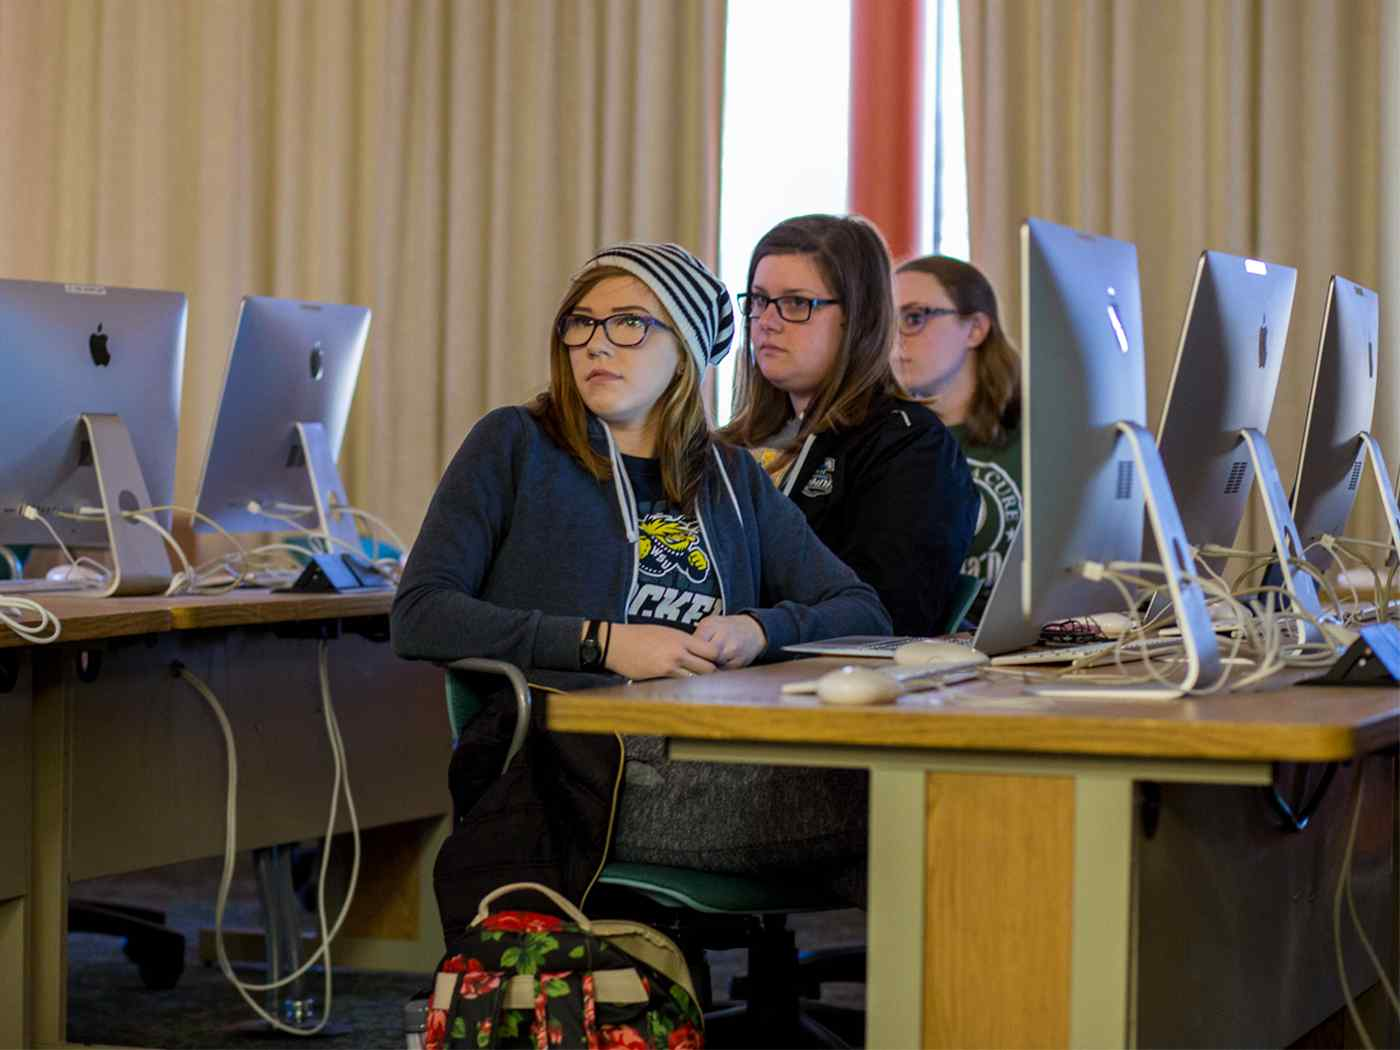 Students in the computer lab.